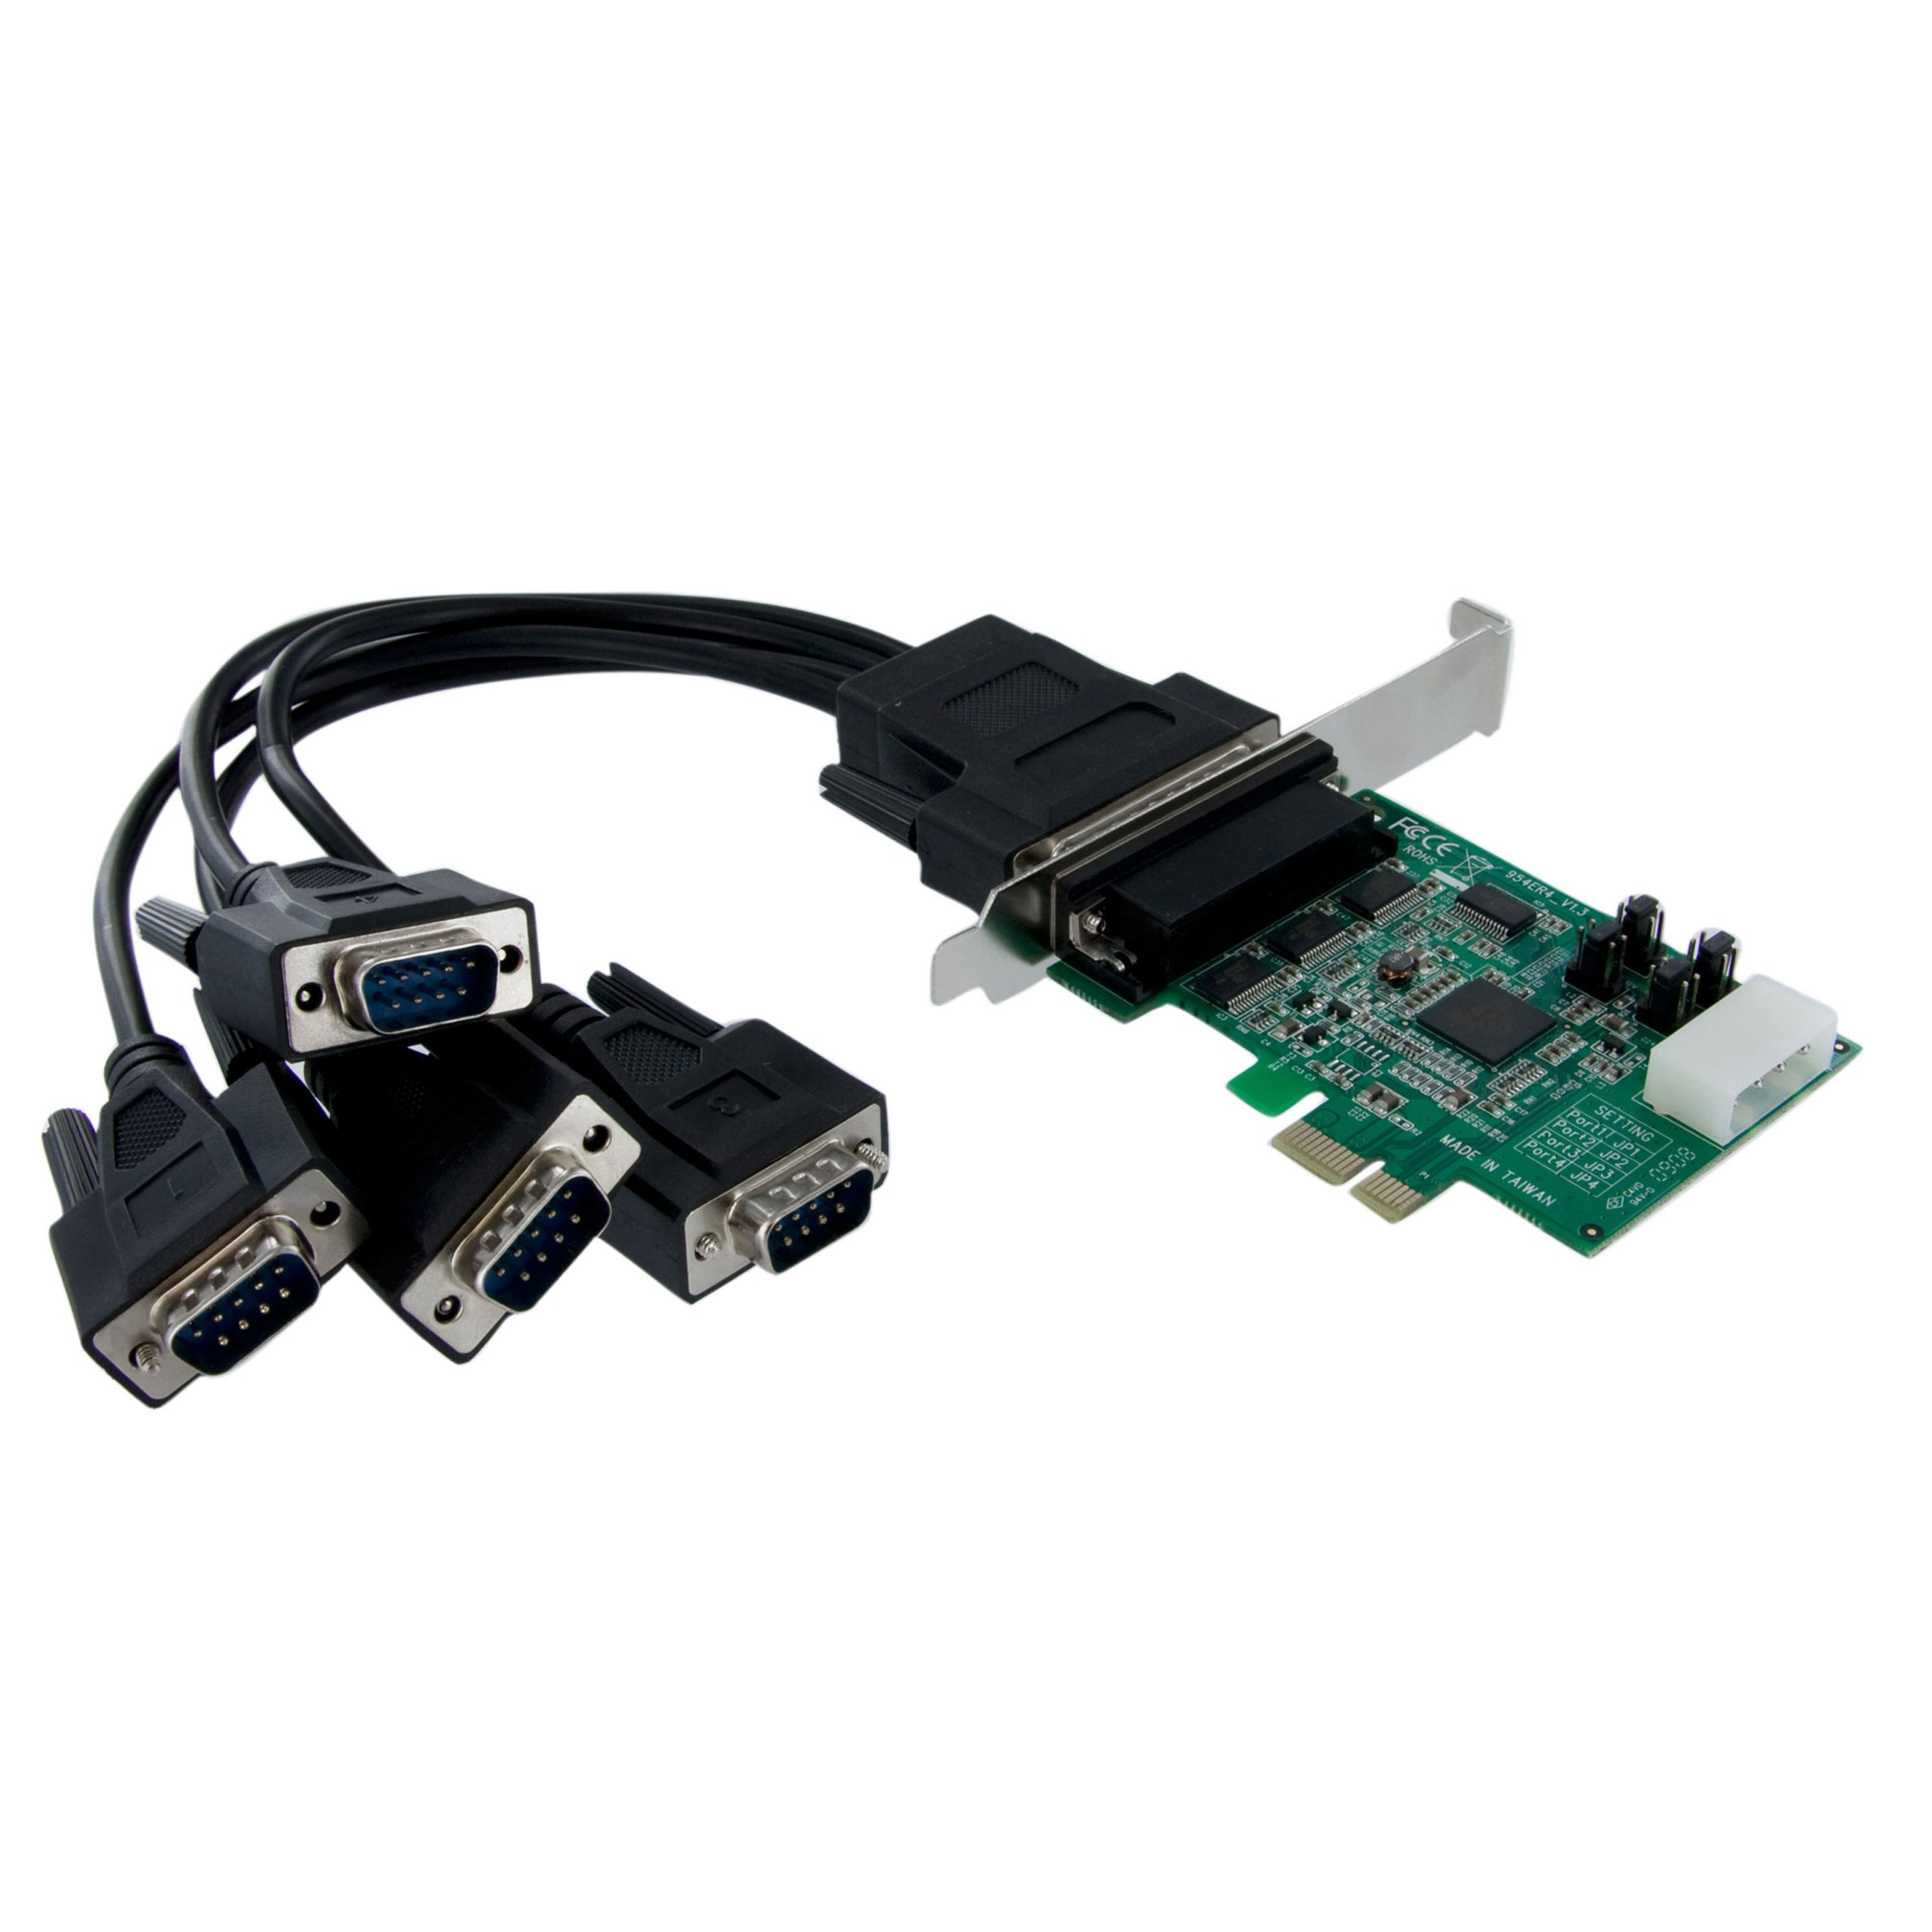 StarTech.com 4 Port Native PCI Express RS232 Serial Adapter Card with 16950 UART - PCIe RS232 Serial Card (PEX4S952) by StarTech